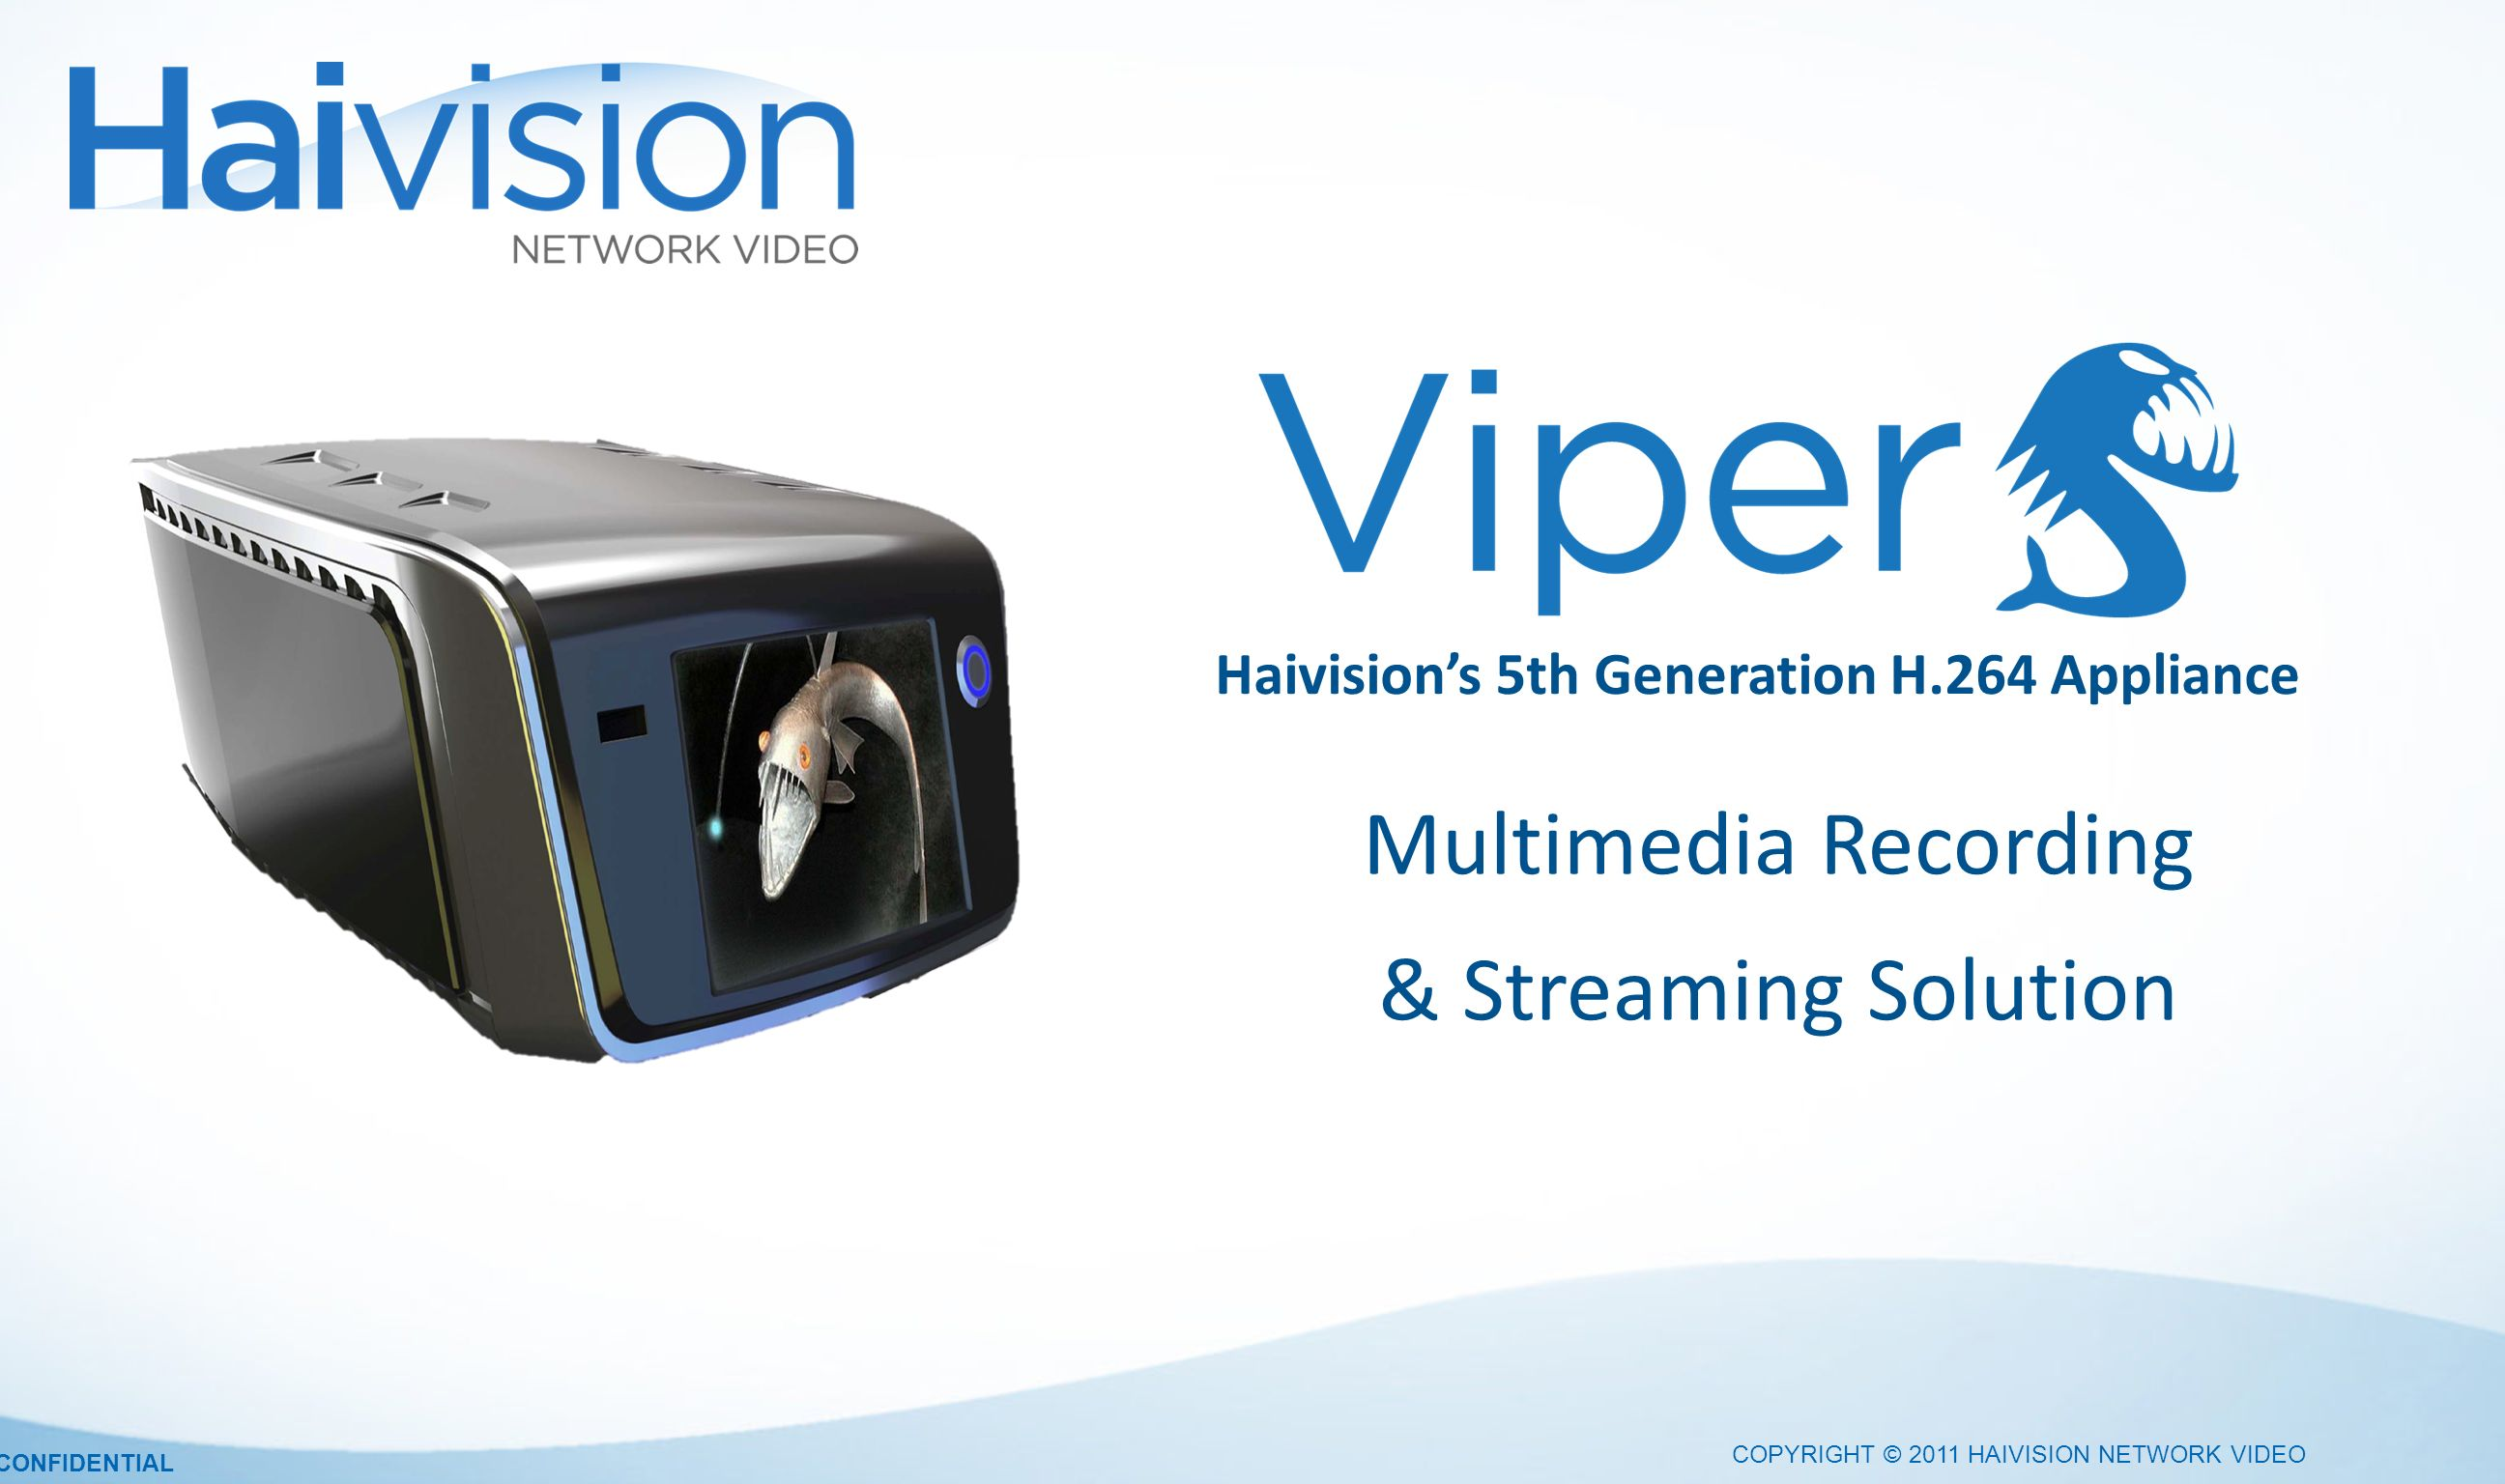 COPYRIGHT © 2011 HAIVISION NETWORK VIDEO CONFIDENTIAL Haivisions 5th Generation H.264 Appliance Multimedia Recording & Streaming Solution